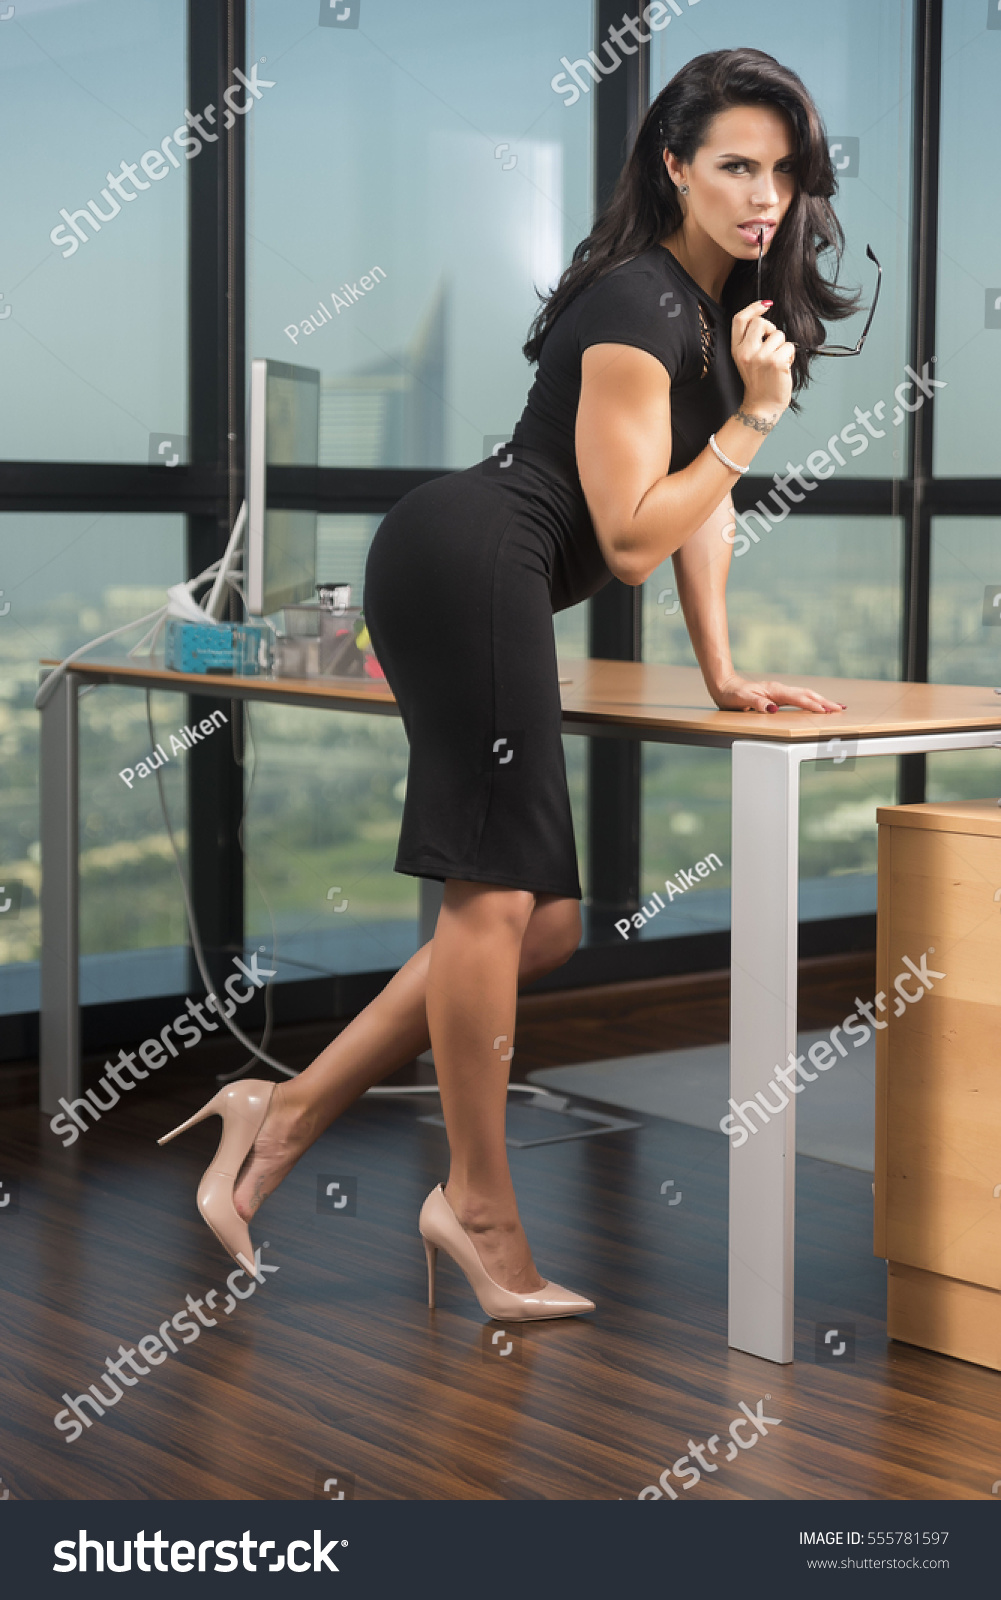 Sexy Corporate Woman Or Secretary In Stock Photo -5516